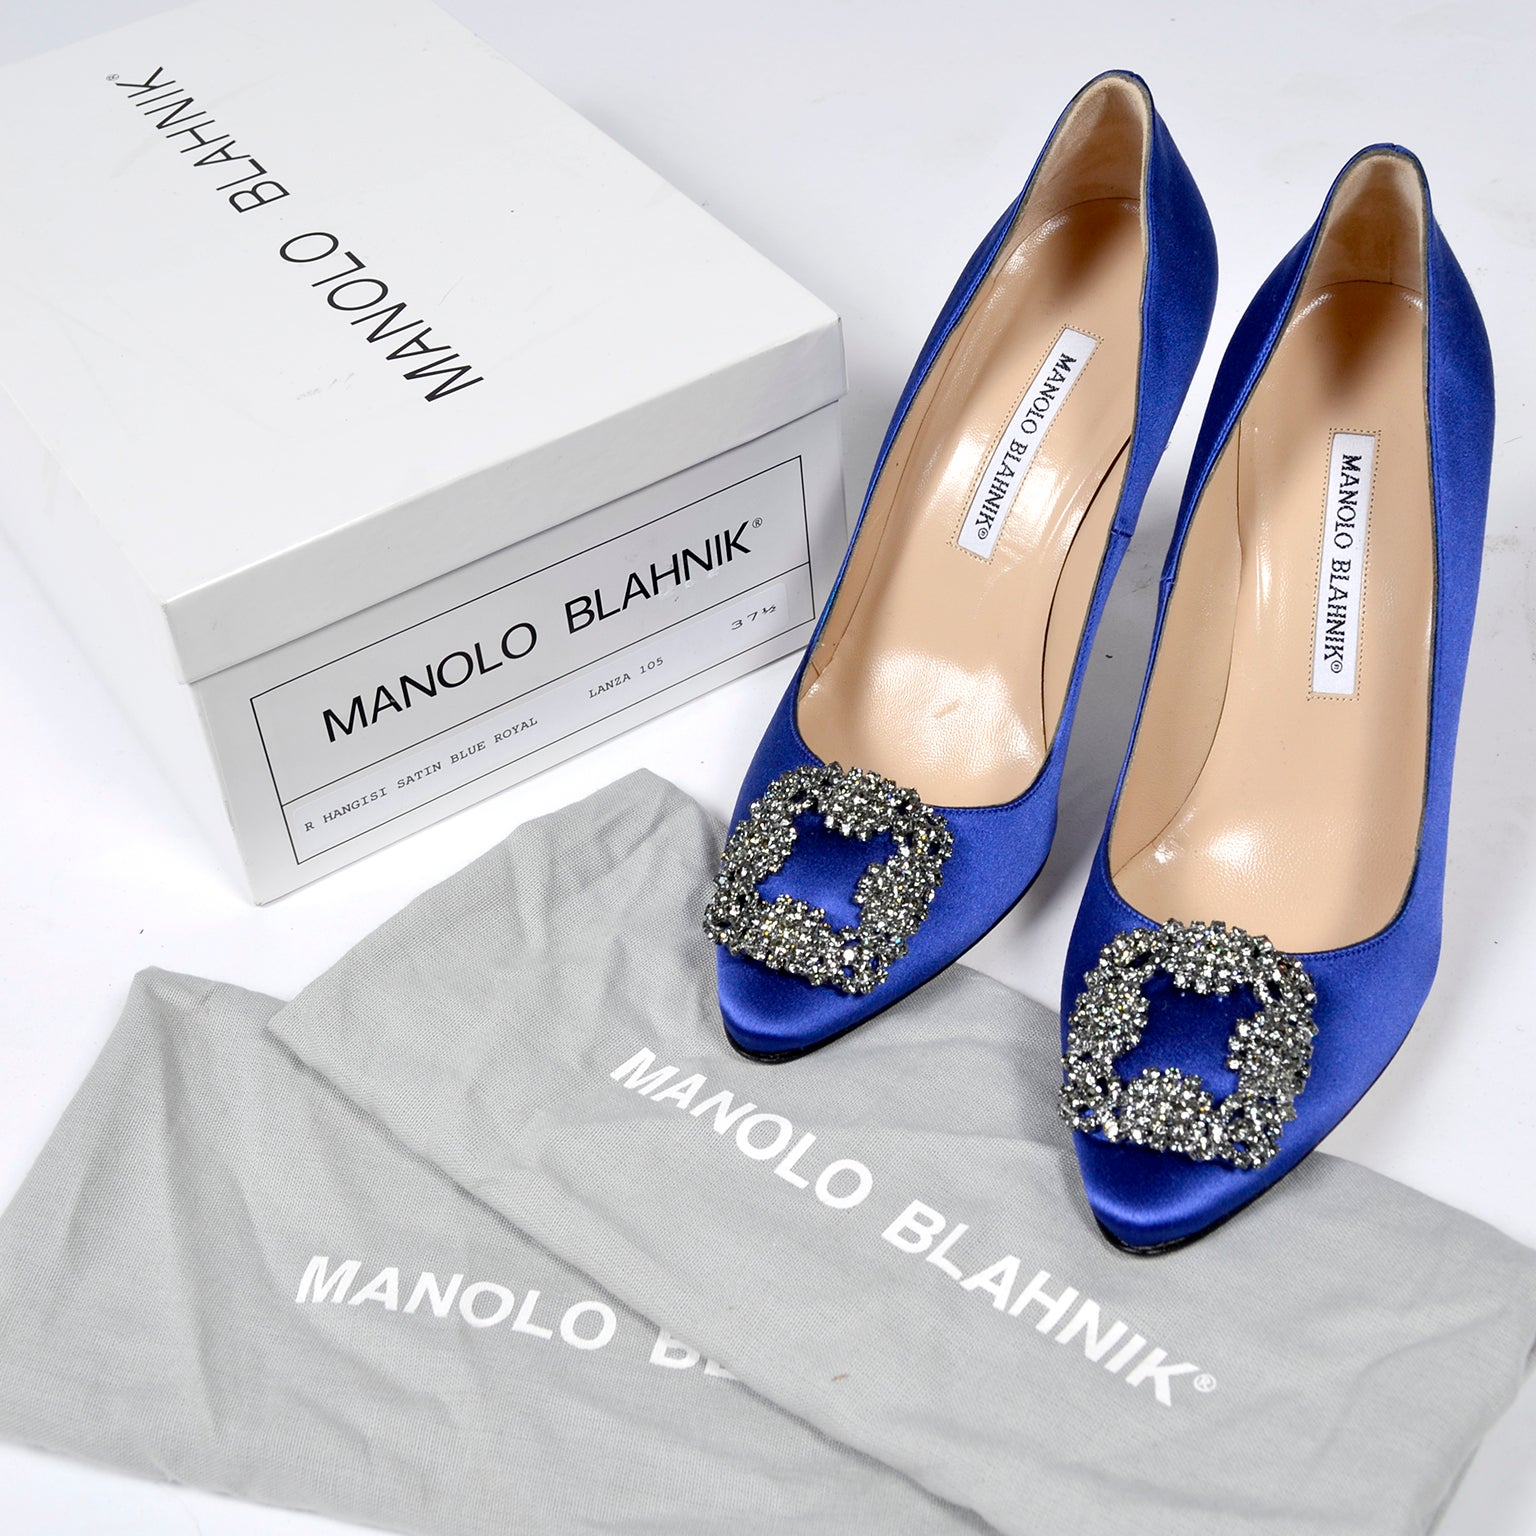 0a7434c86c641 New Manolo Blahnik Carrie Bradshaw Blue Satin Shoes Lanza Heels in box 37.5  at 1stdibs